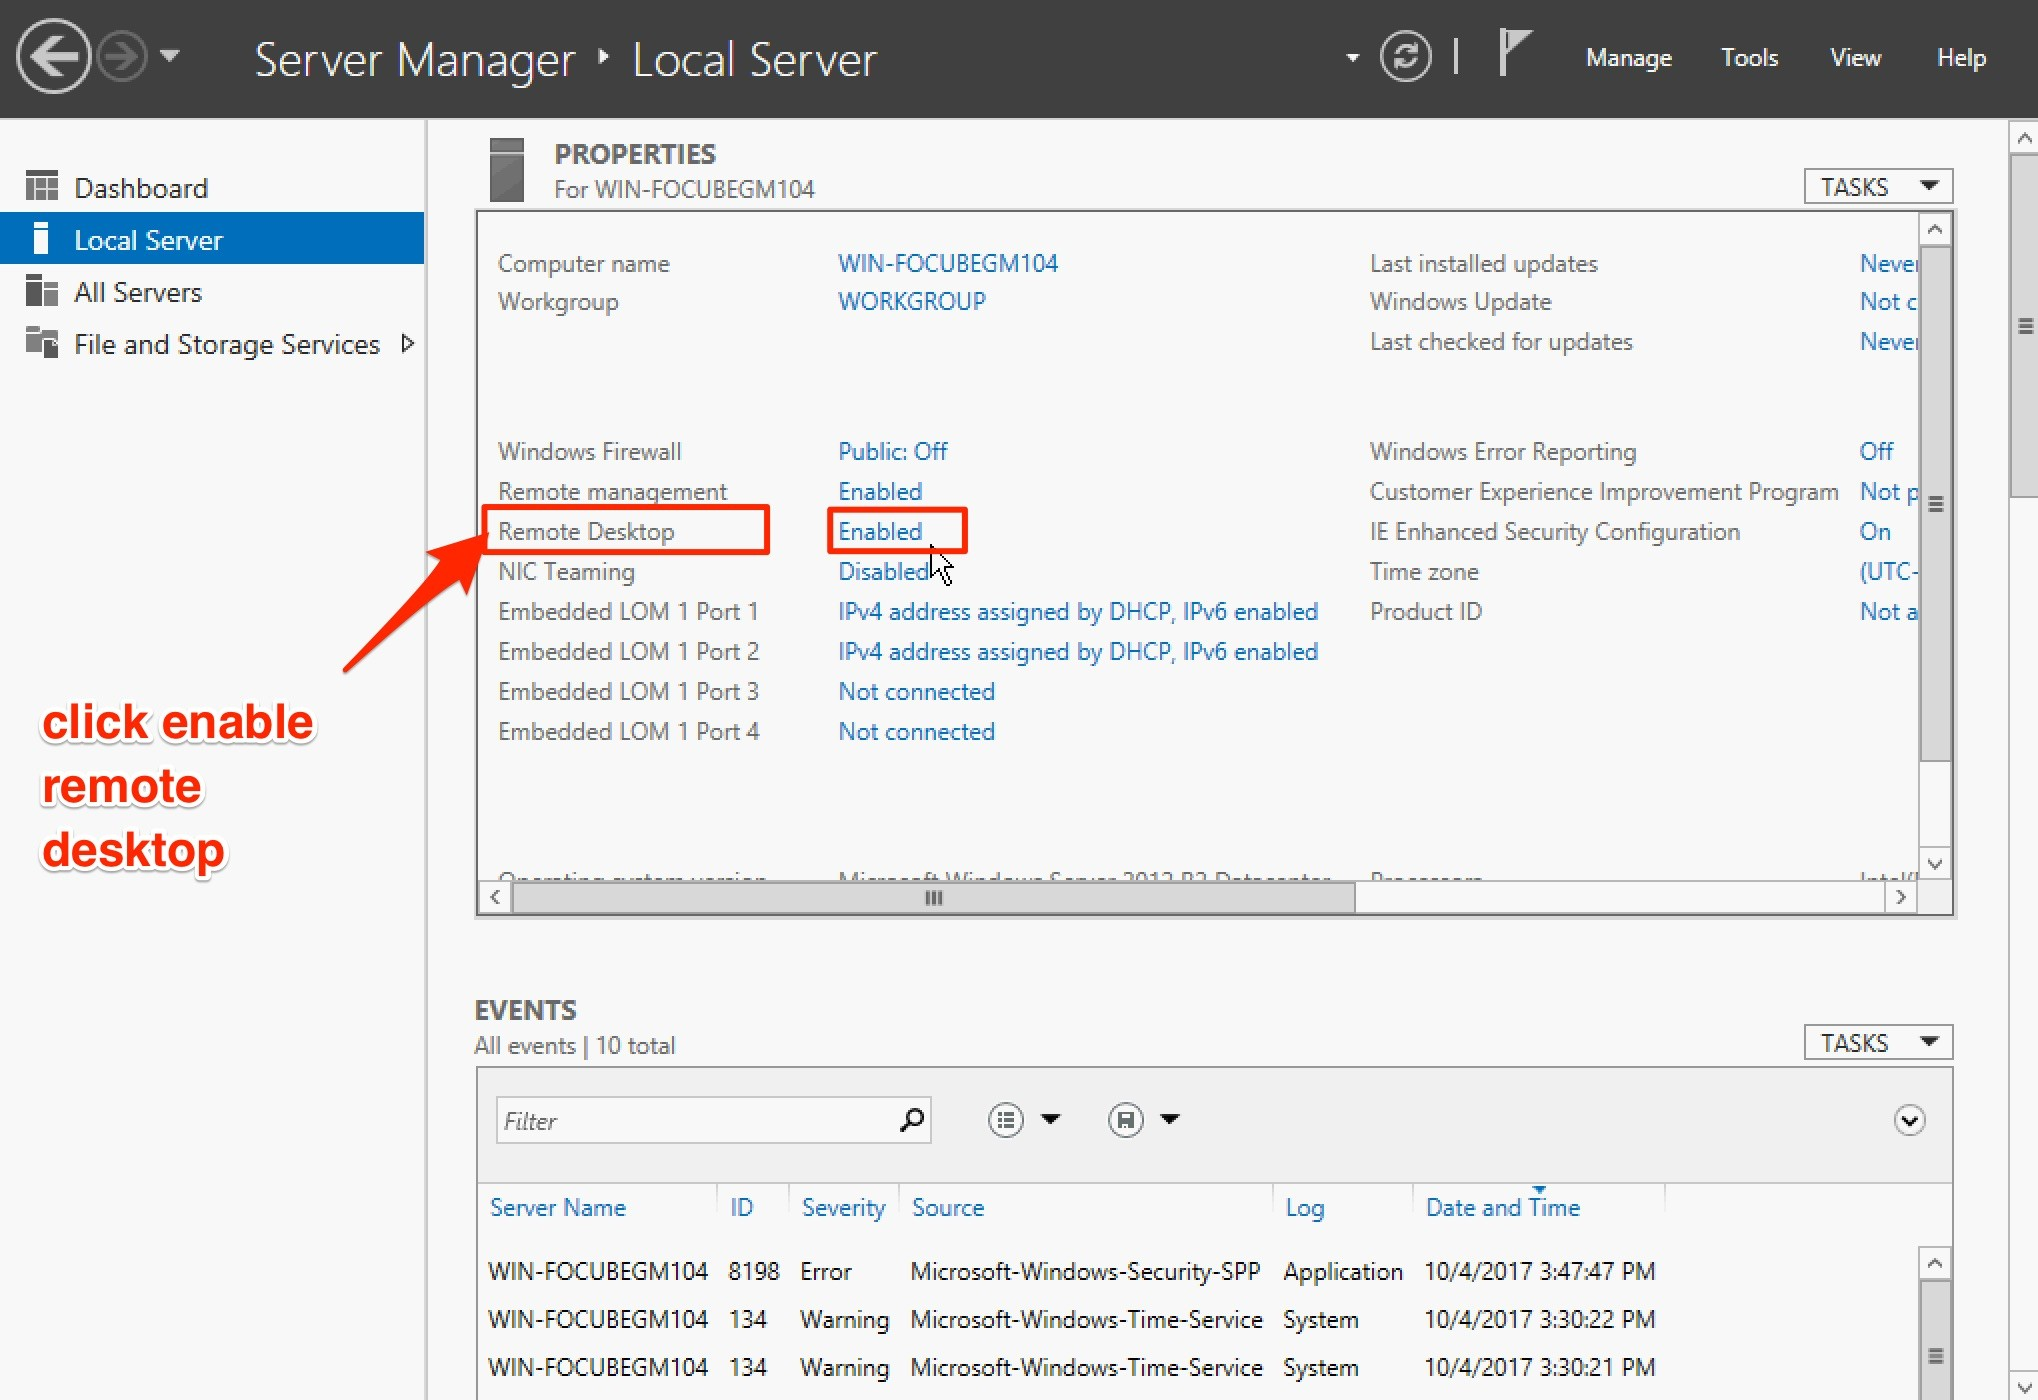 kích hoạt remote desktop windows server 2012 - local server